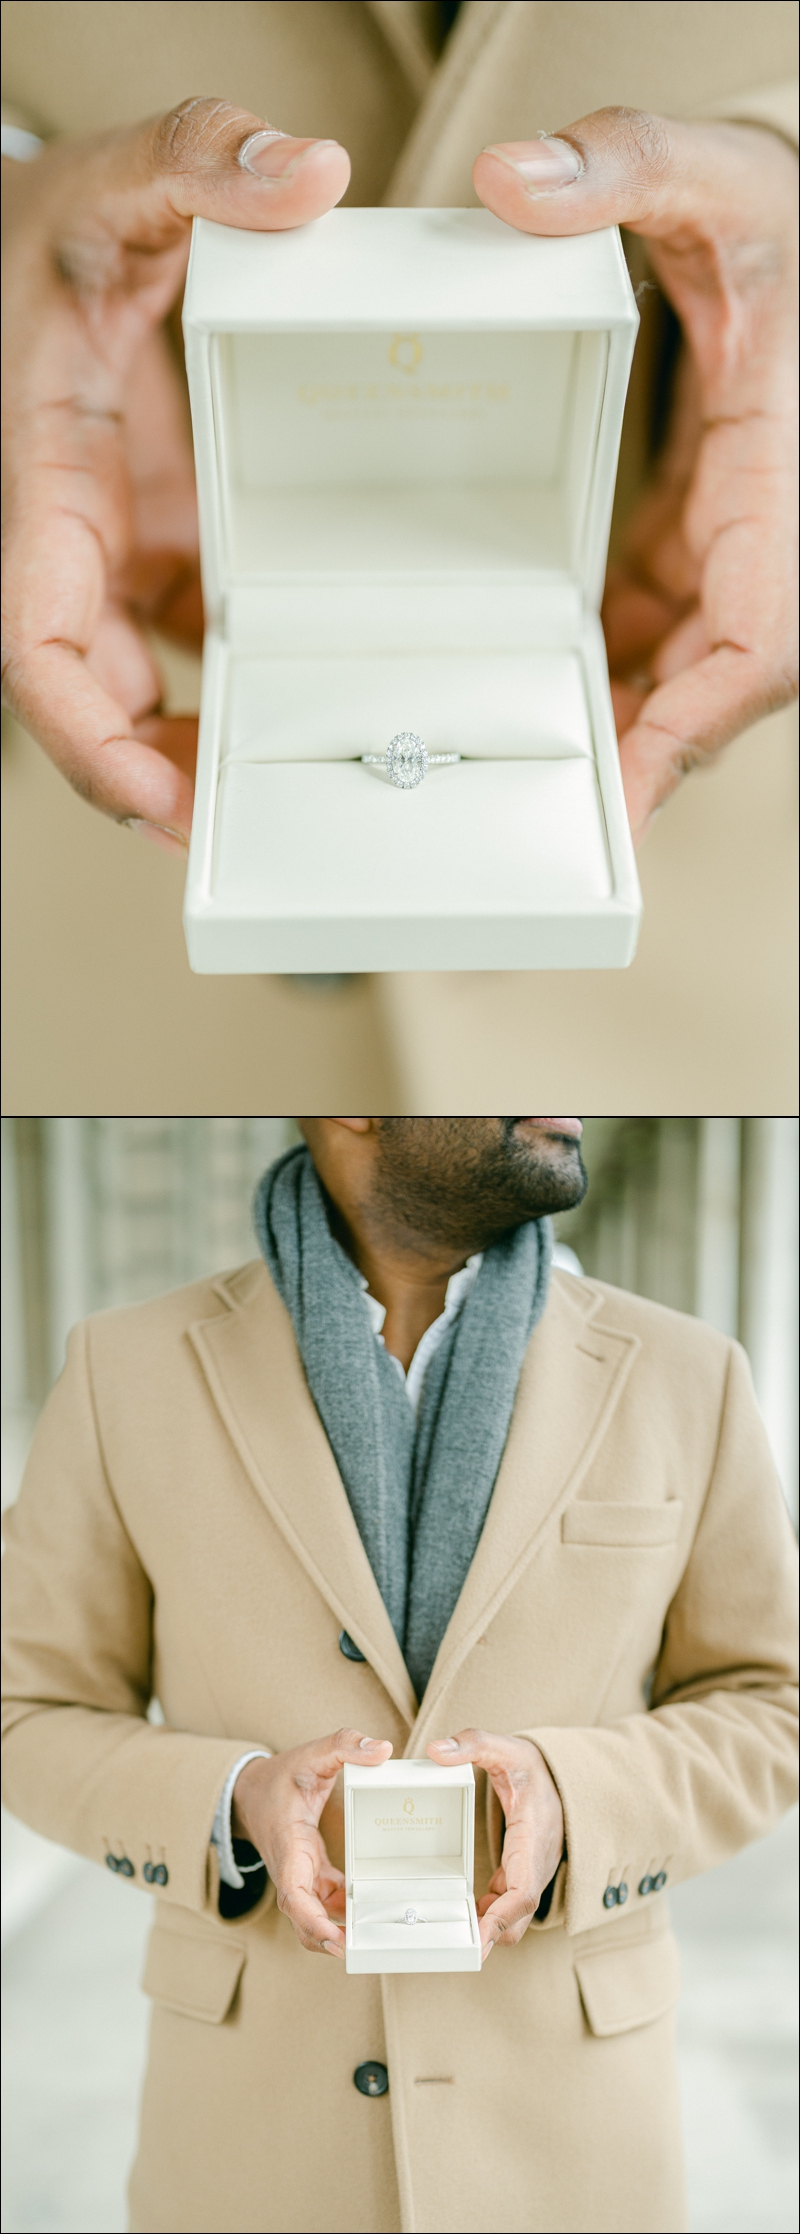 The engagement ring ahead of a London Surprise proposal